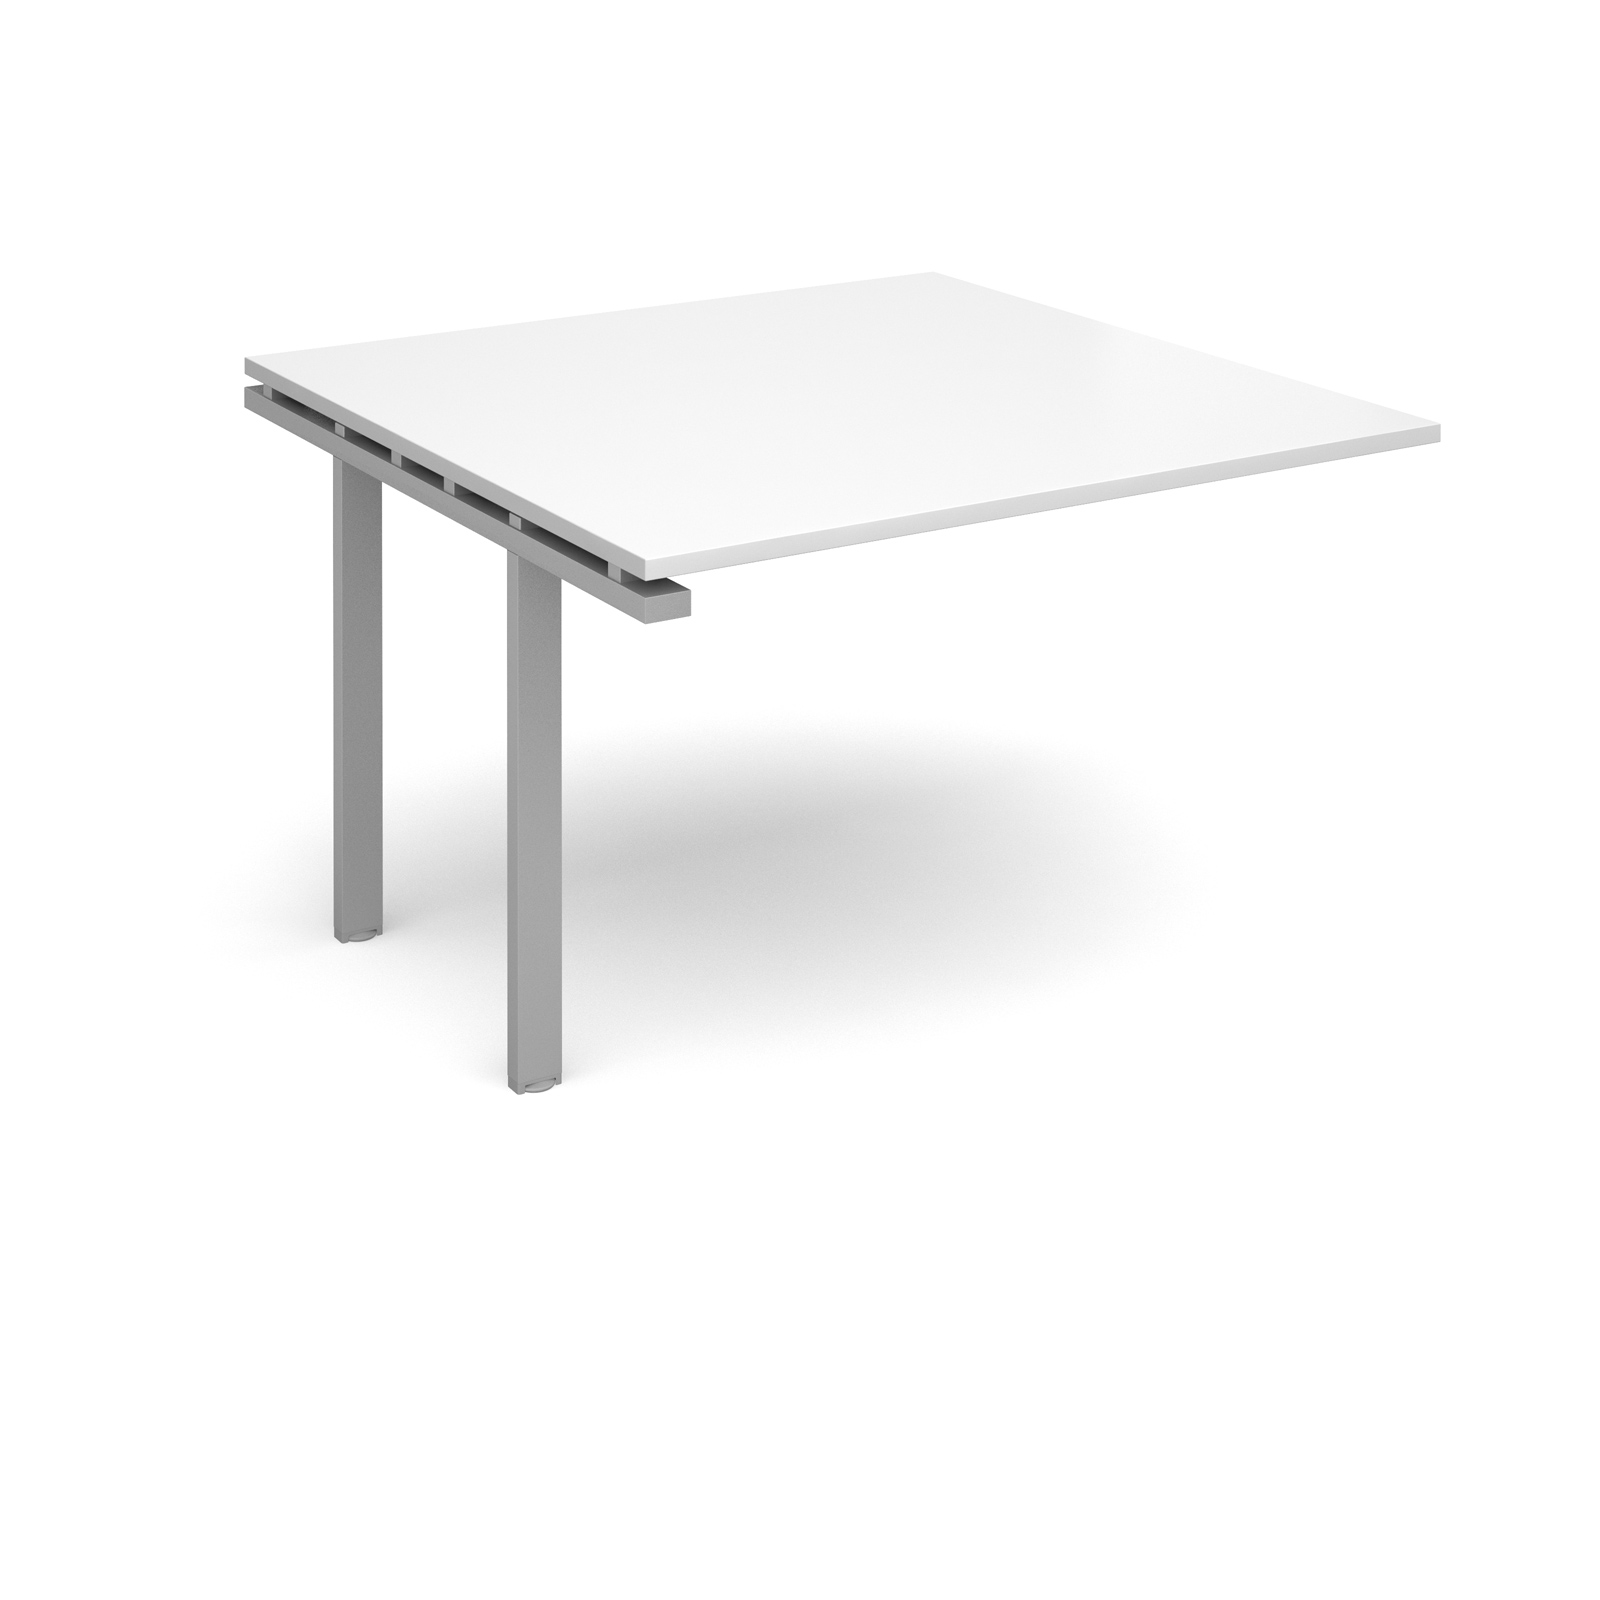 Dams Bench Boardroom Table Add On Unit